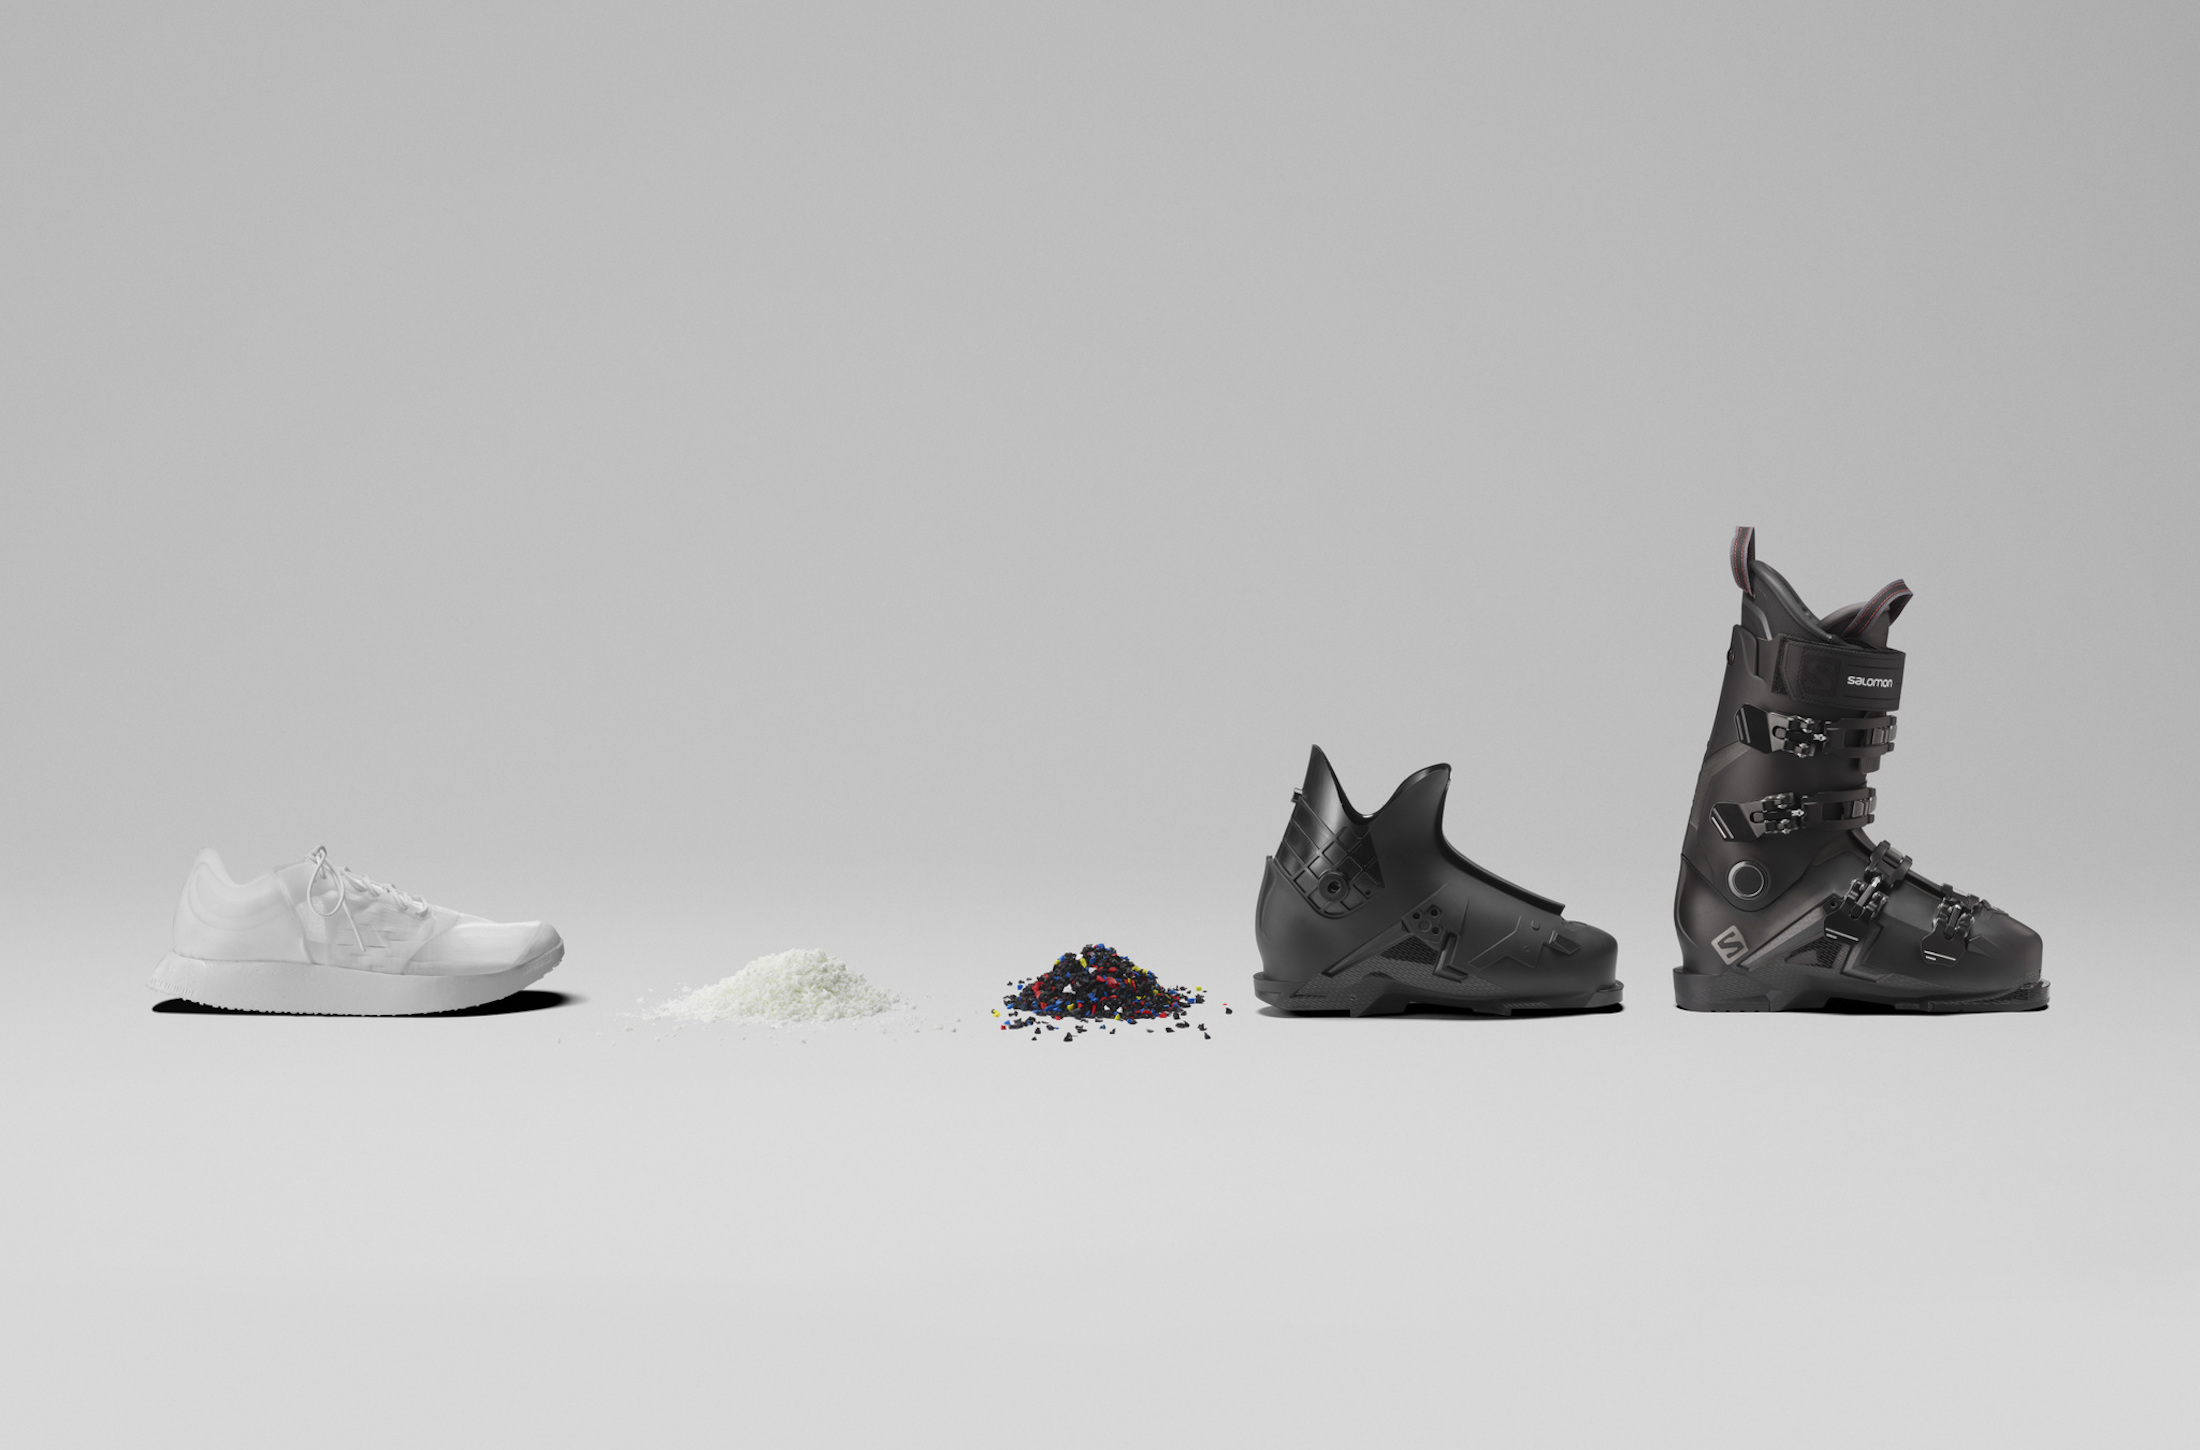 evolution of Salomon Concept shoe: from undyed shoe to recycled pellets to recycled plastic made into a ski boot